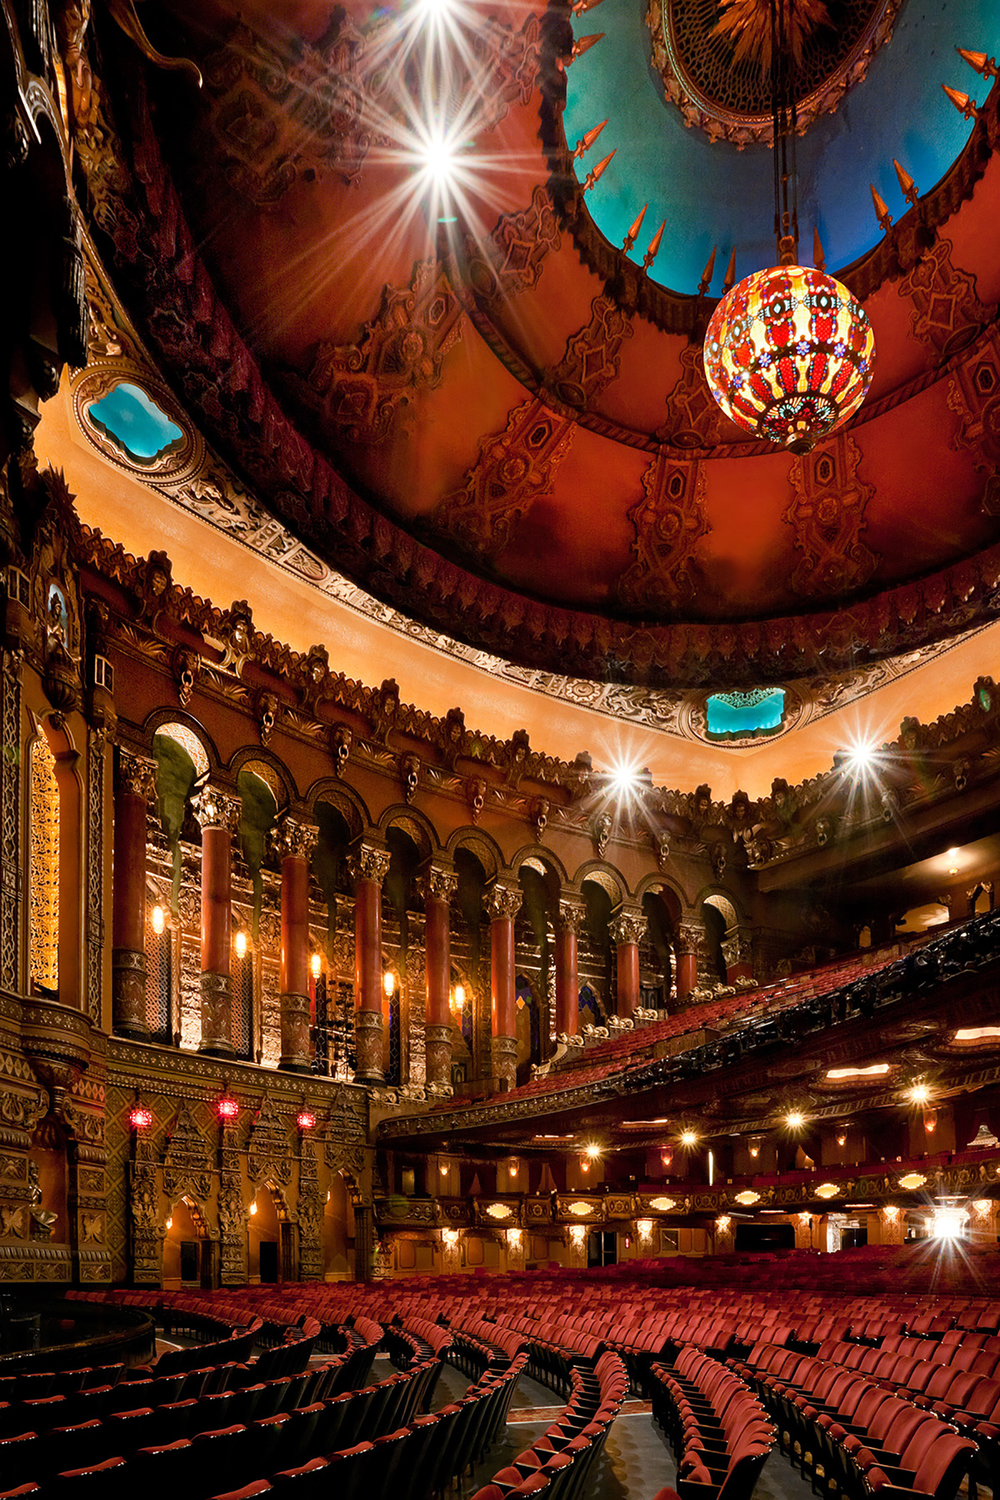 Fox Theater / C. Howard Crane / St. Louis MO